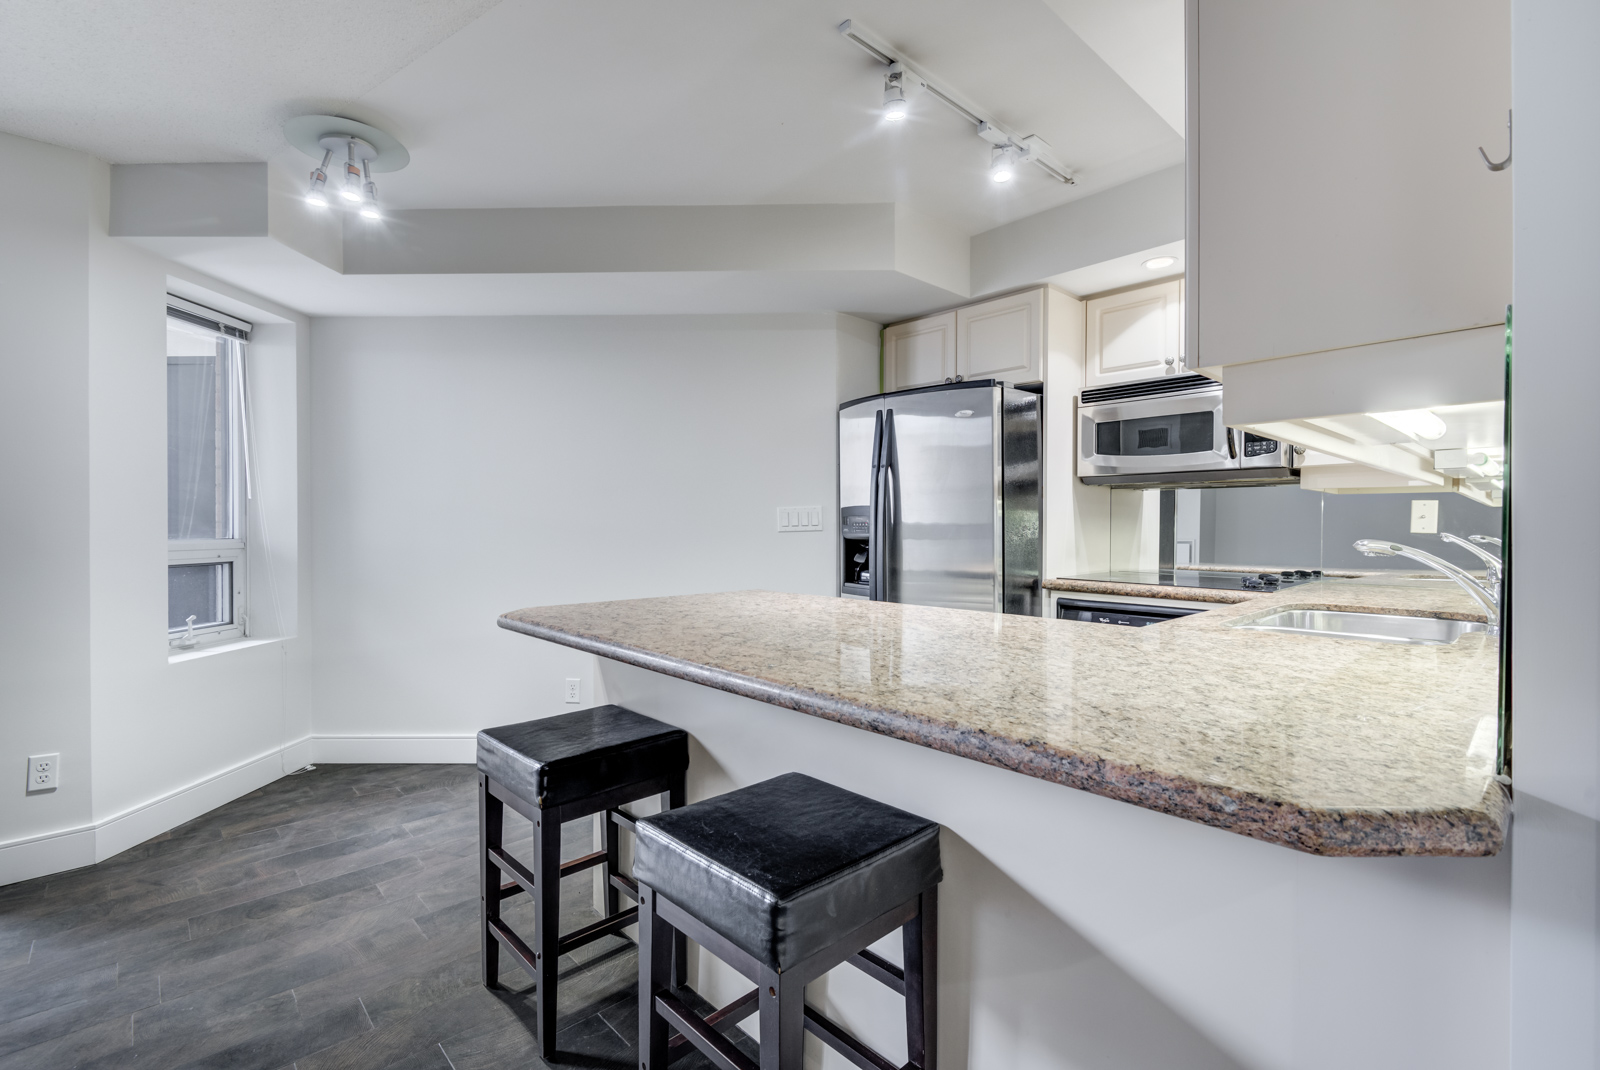 Granite breakfast bar with 2 chairs.